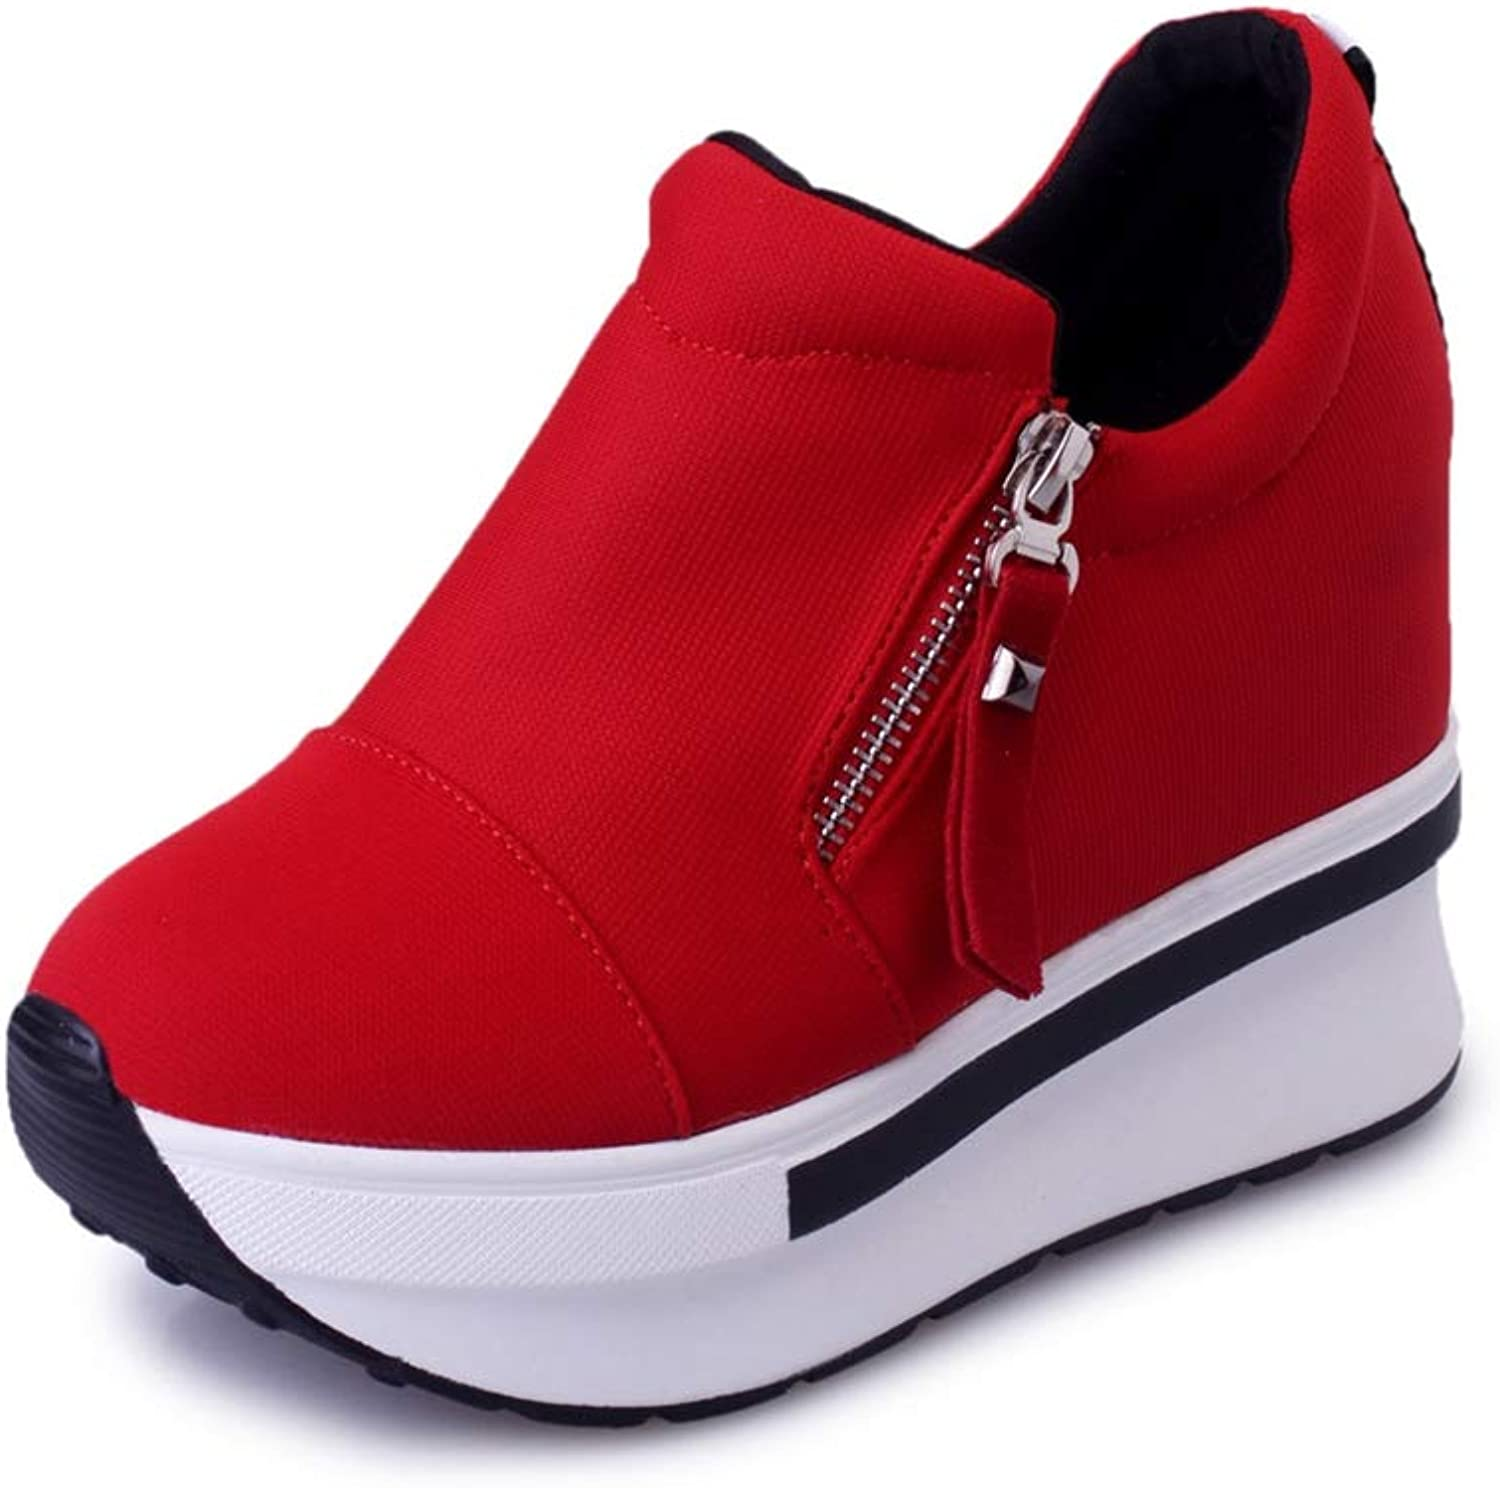 U-MAC Woman Wedge Sneakers Side Zipper Solid color Female Casual Canvas shoes Comfortable Slip On Platform